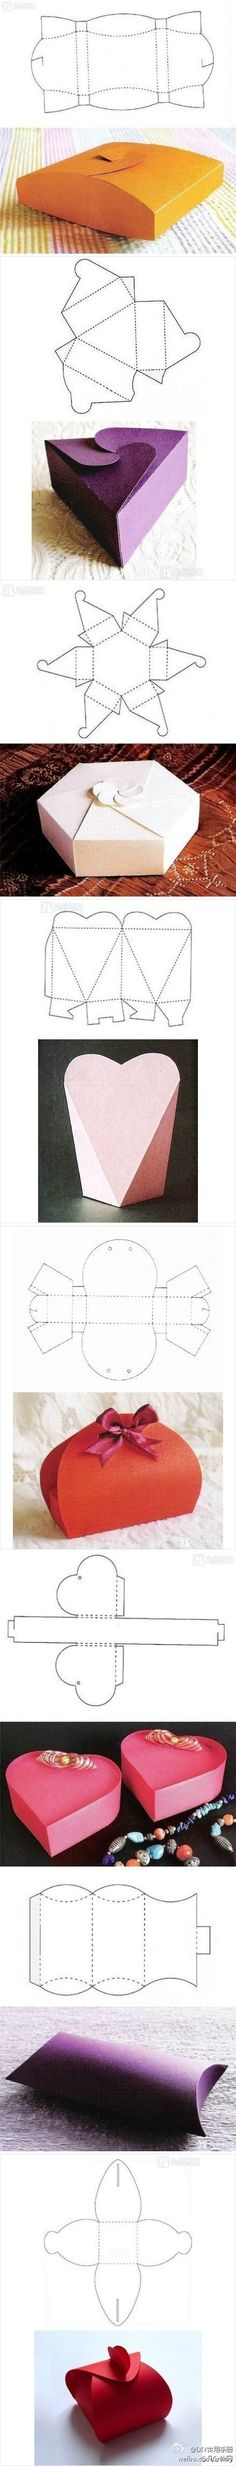 DIY Make you own boxes finding paper print out to fold lines step by step!